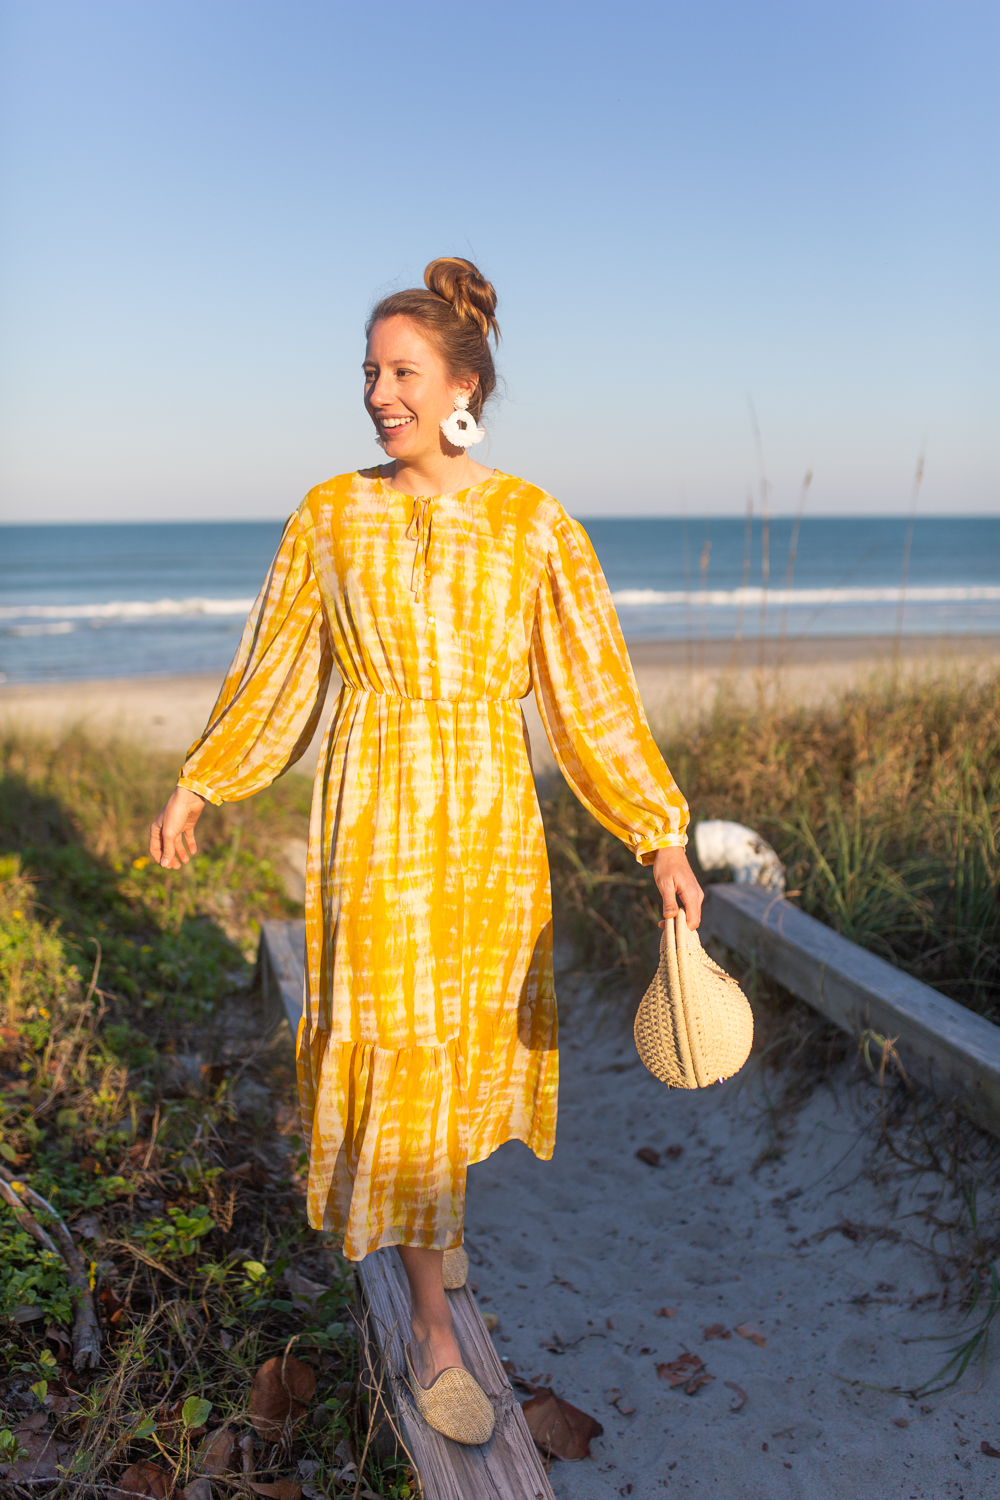 Bright Spring Dresses for Everyday / Yellow Spring Dresses / Bright Dresses to Add Happiness To Your Day / Spring Dress Inspiration / What to Wear on a Tropical Vacation - Sunshine Style, A Florida Fashion and Lifestyle Blog by Katie